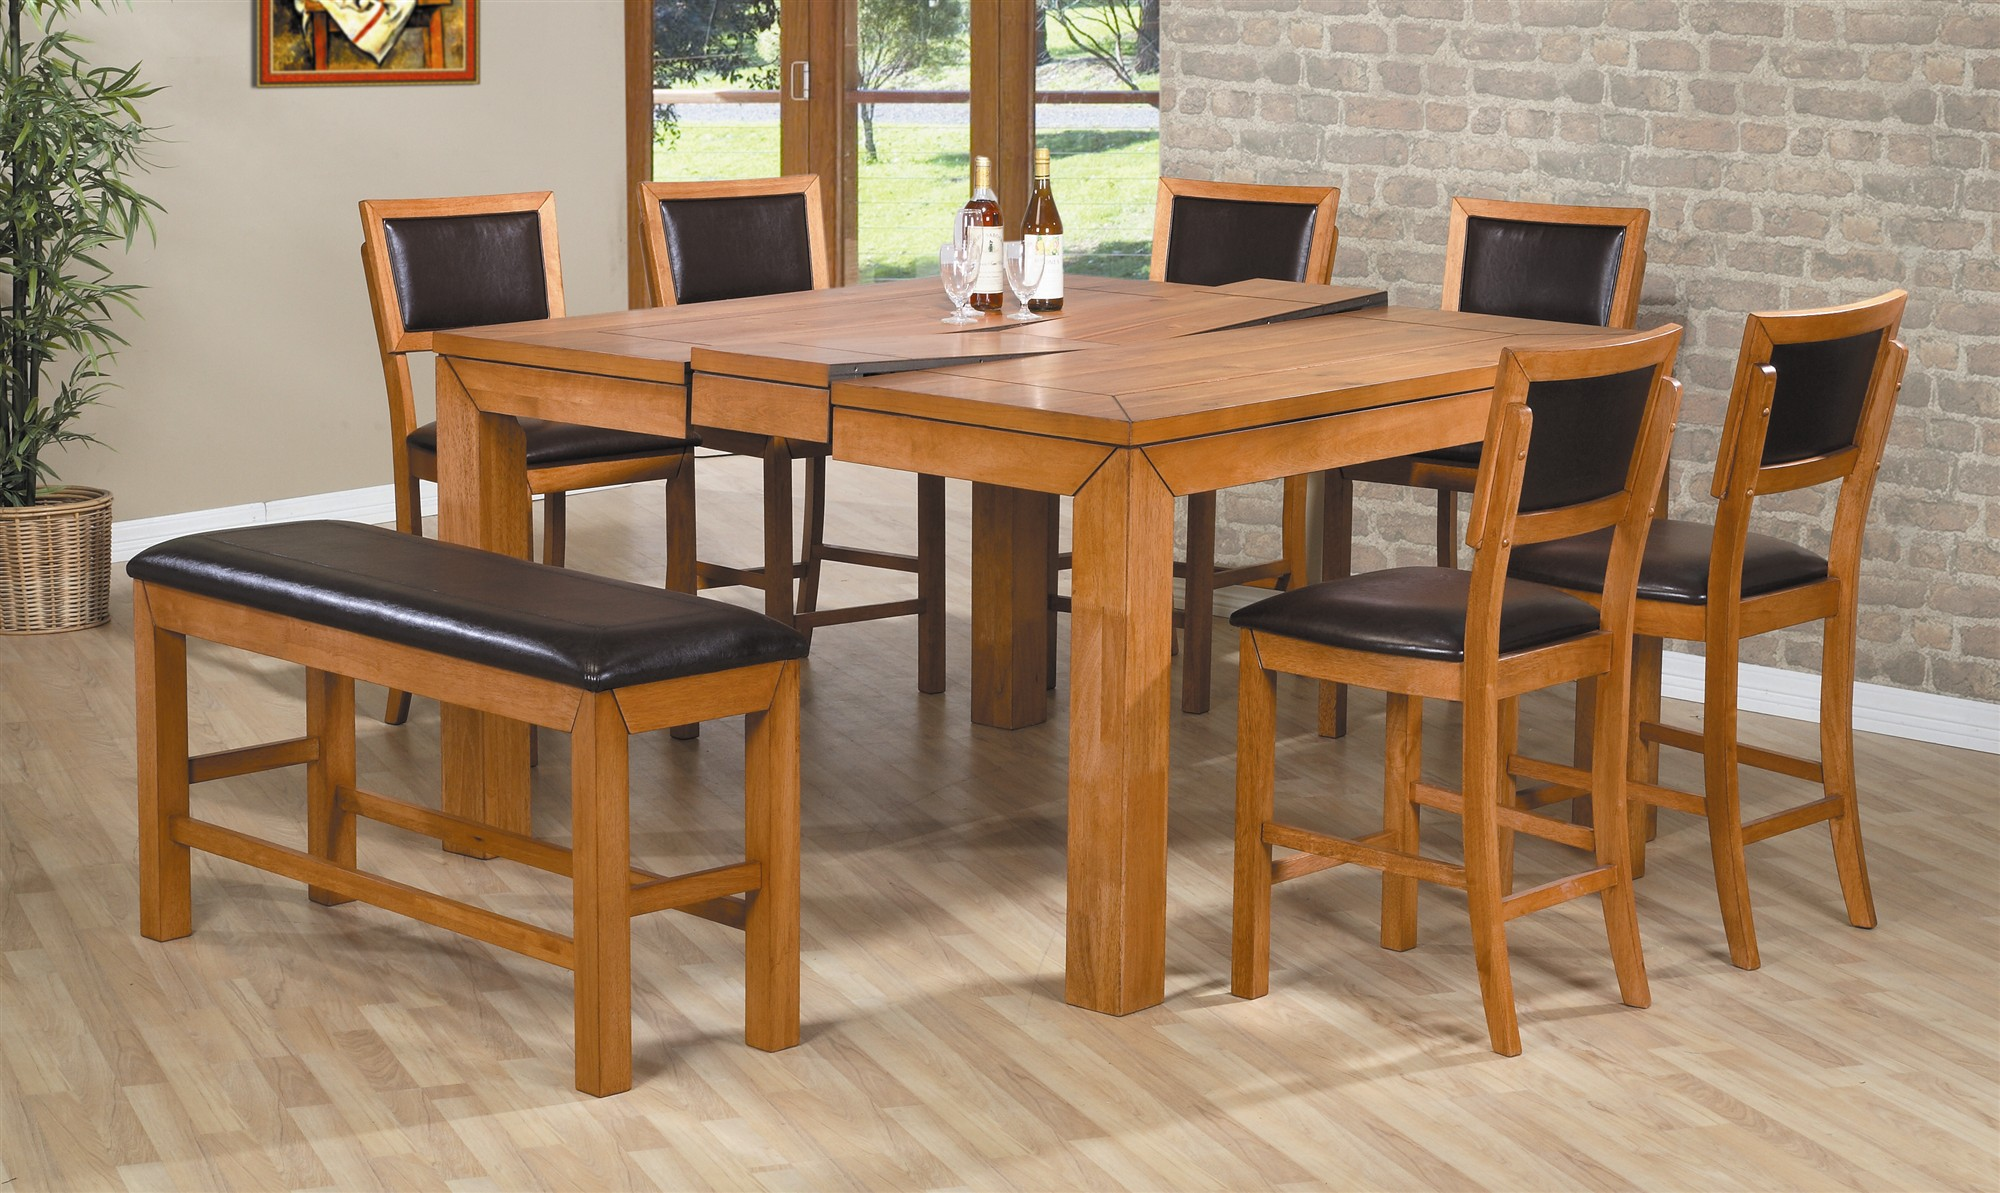 Dining Room Table With Chairs Dining Room Table Seats 12 For Big Family Homesfeed